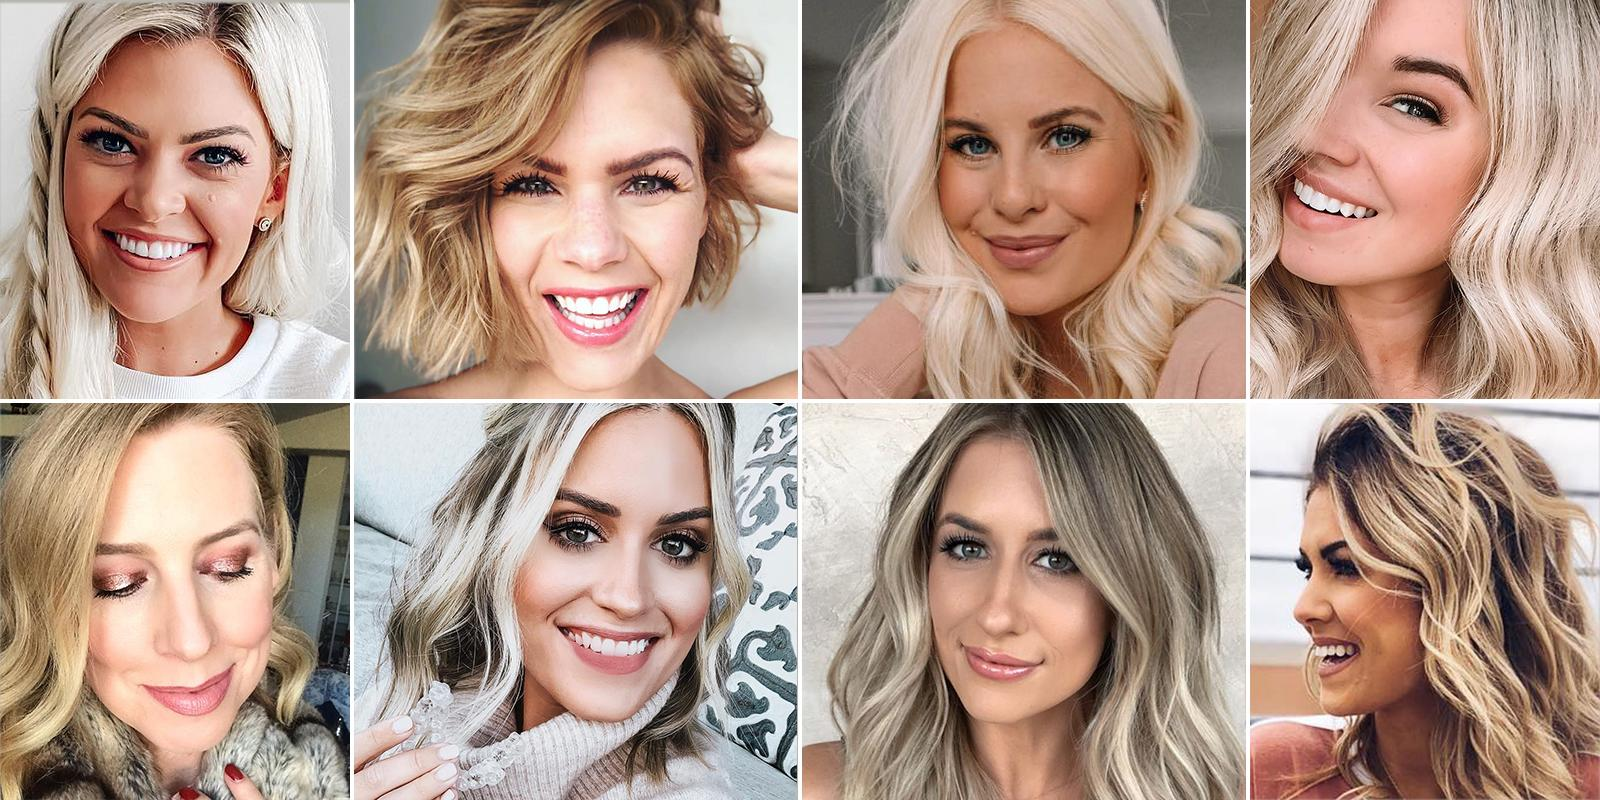 10 Instagrammers to Follow for Blonde Hair Color Inspiration